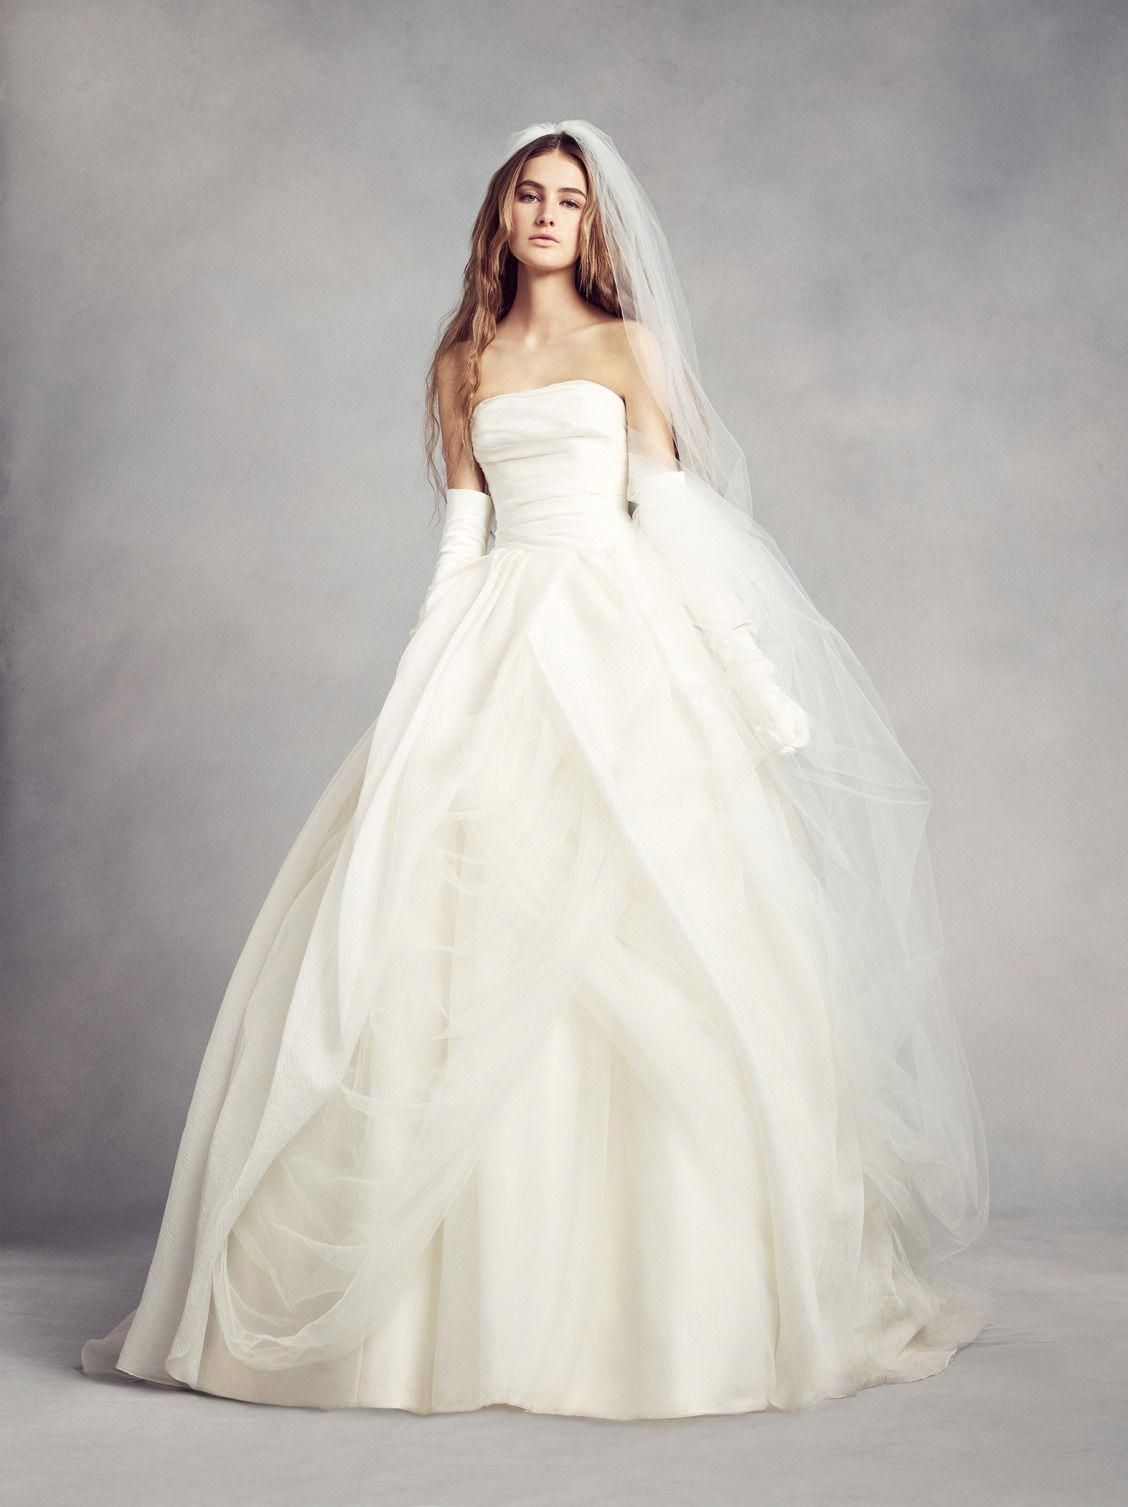 David bridal wedding dress  This magnificent textured organza wedding dress with draped bodice